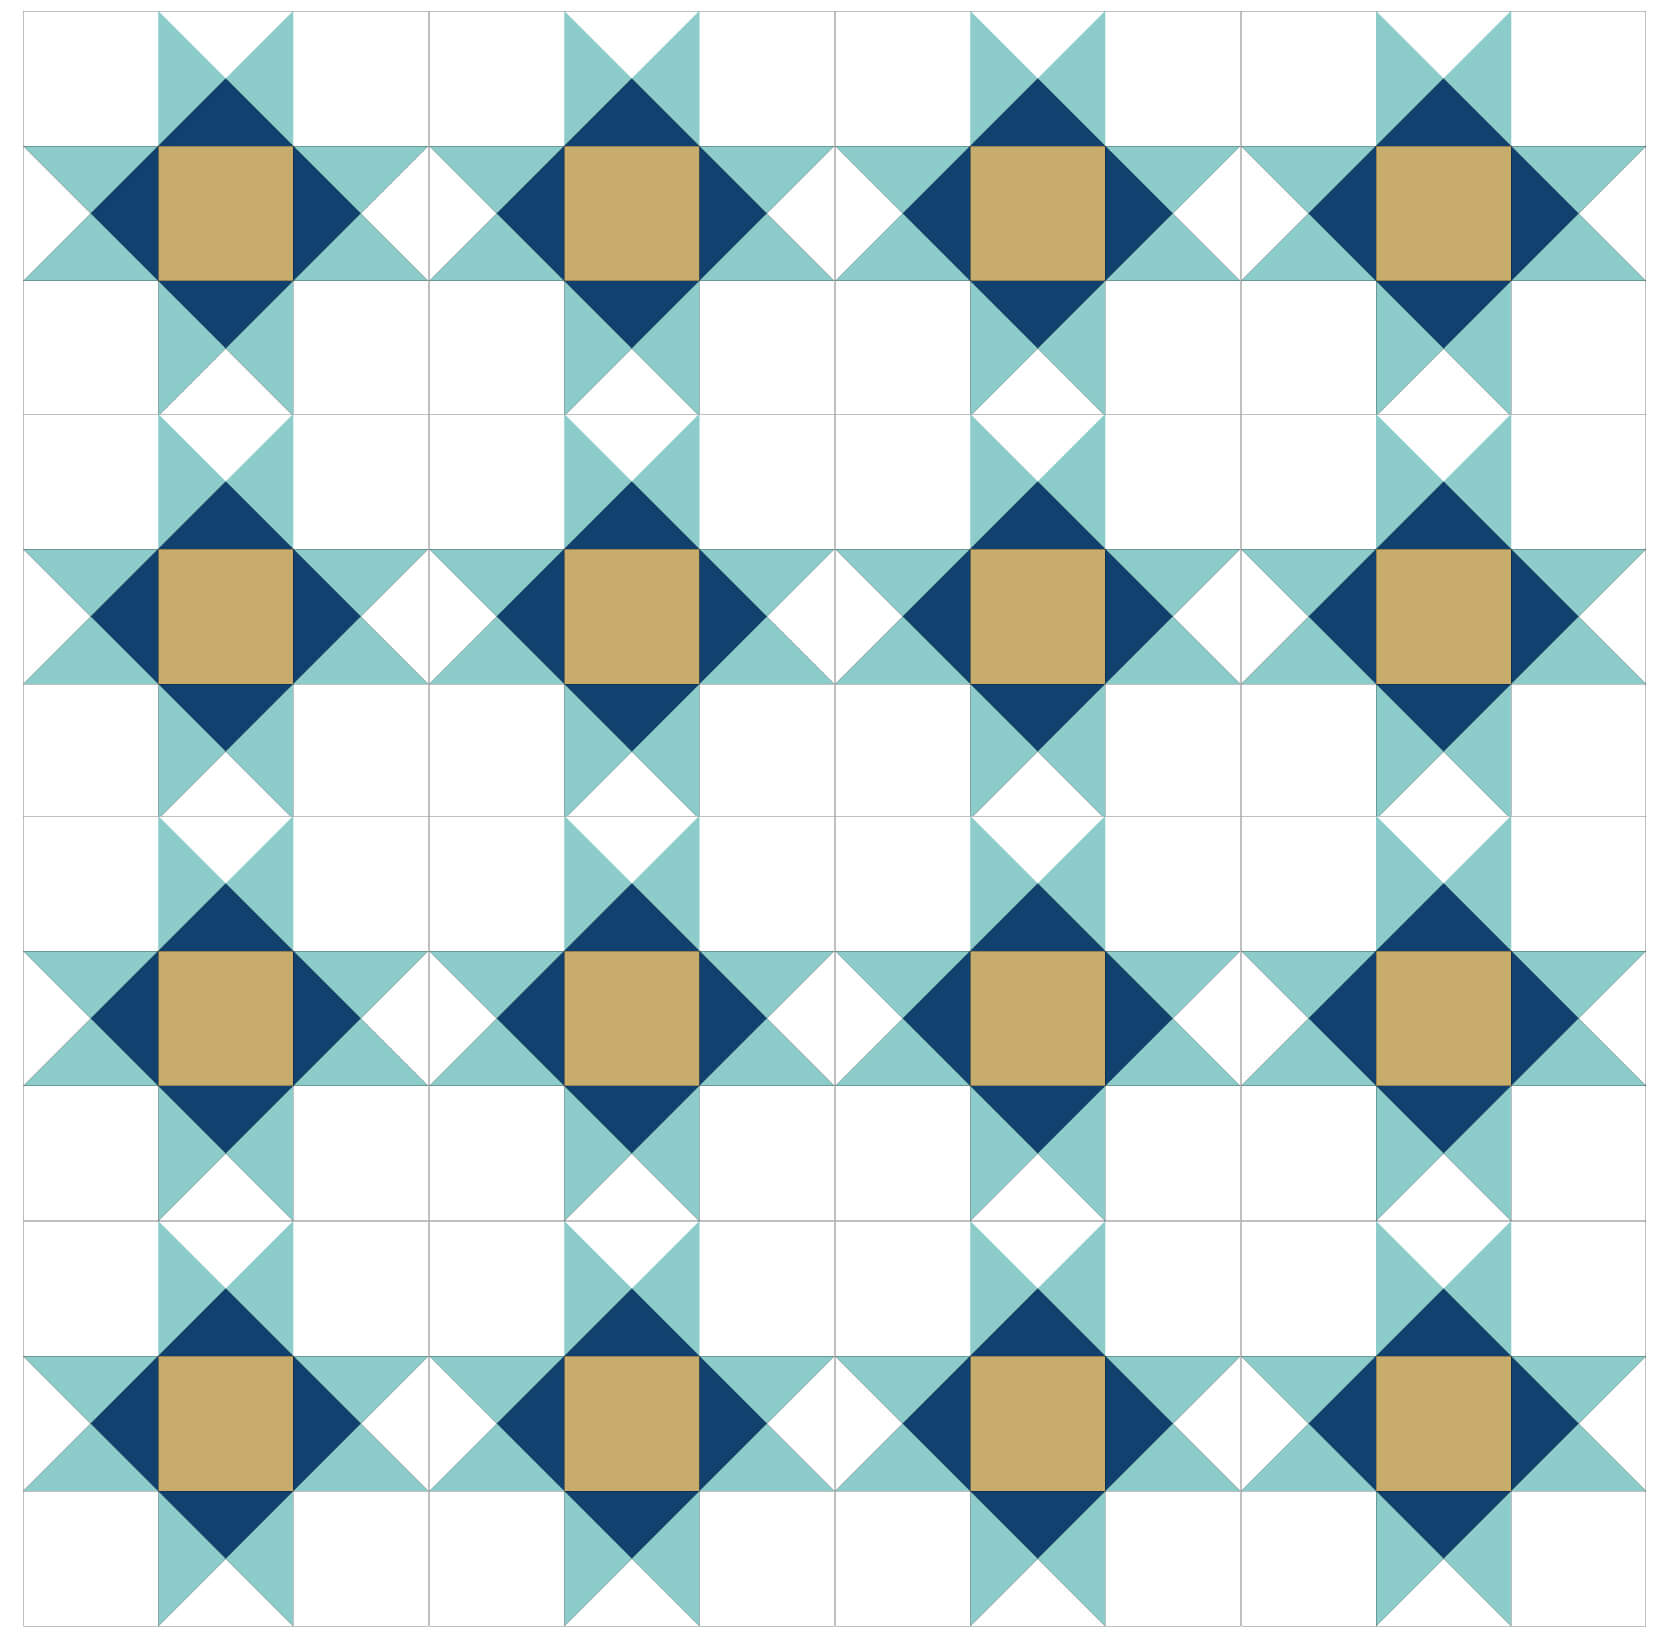 Illustration of a Quilt made with Ohio Star Quilt Blocks in Straight Sets